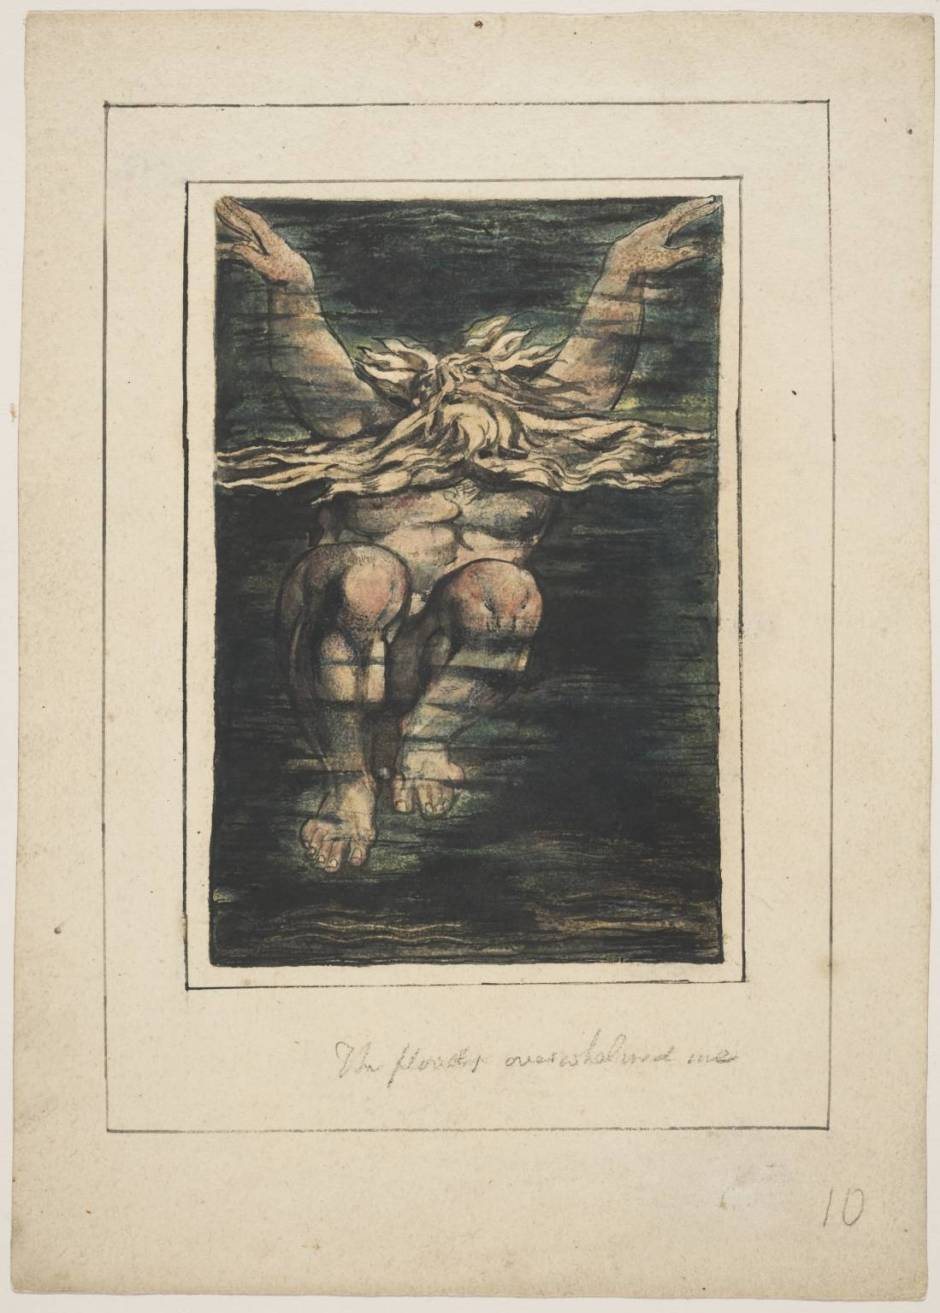 First Book of Urizen pl. 11 1796, circa 1818 by William Blake 1757-1827